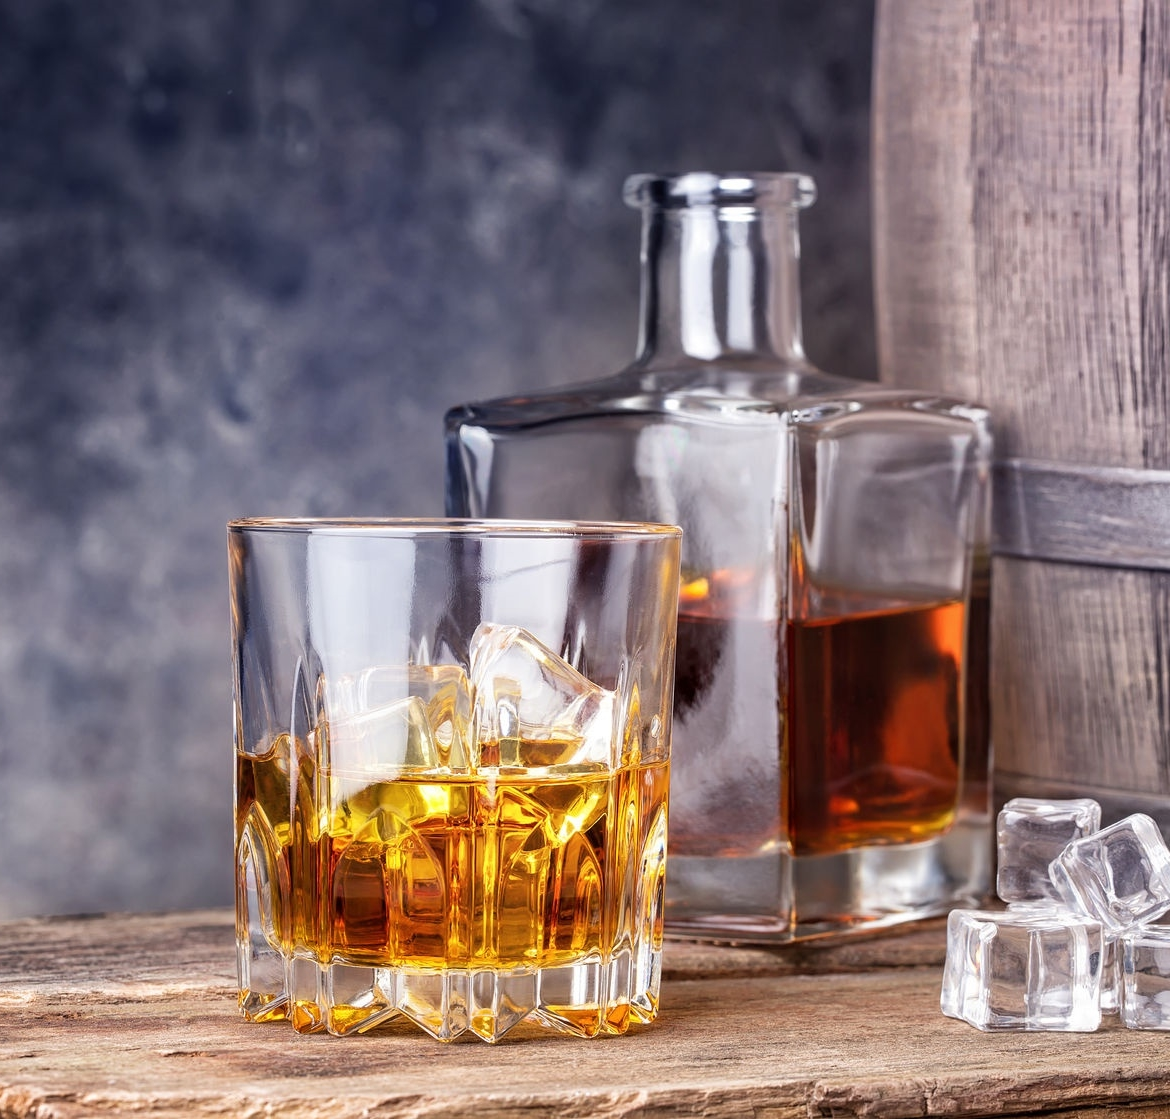 whisky in glass and ice on the background of wooden barrels